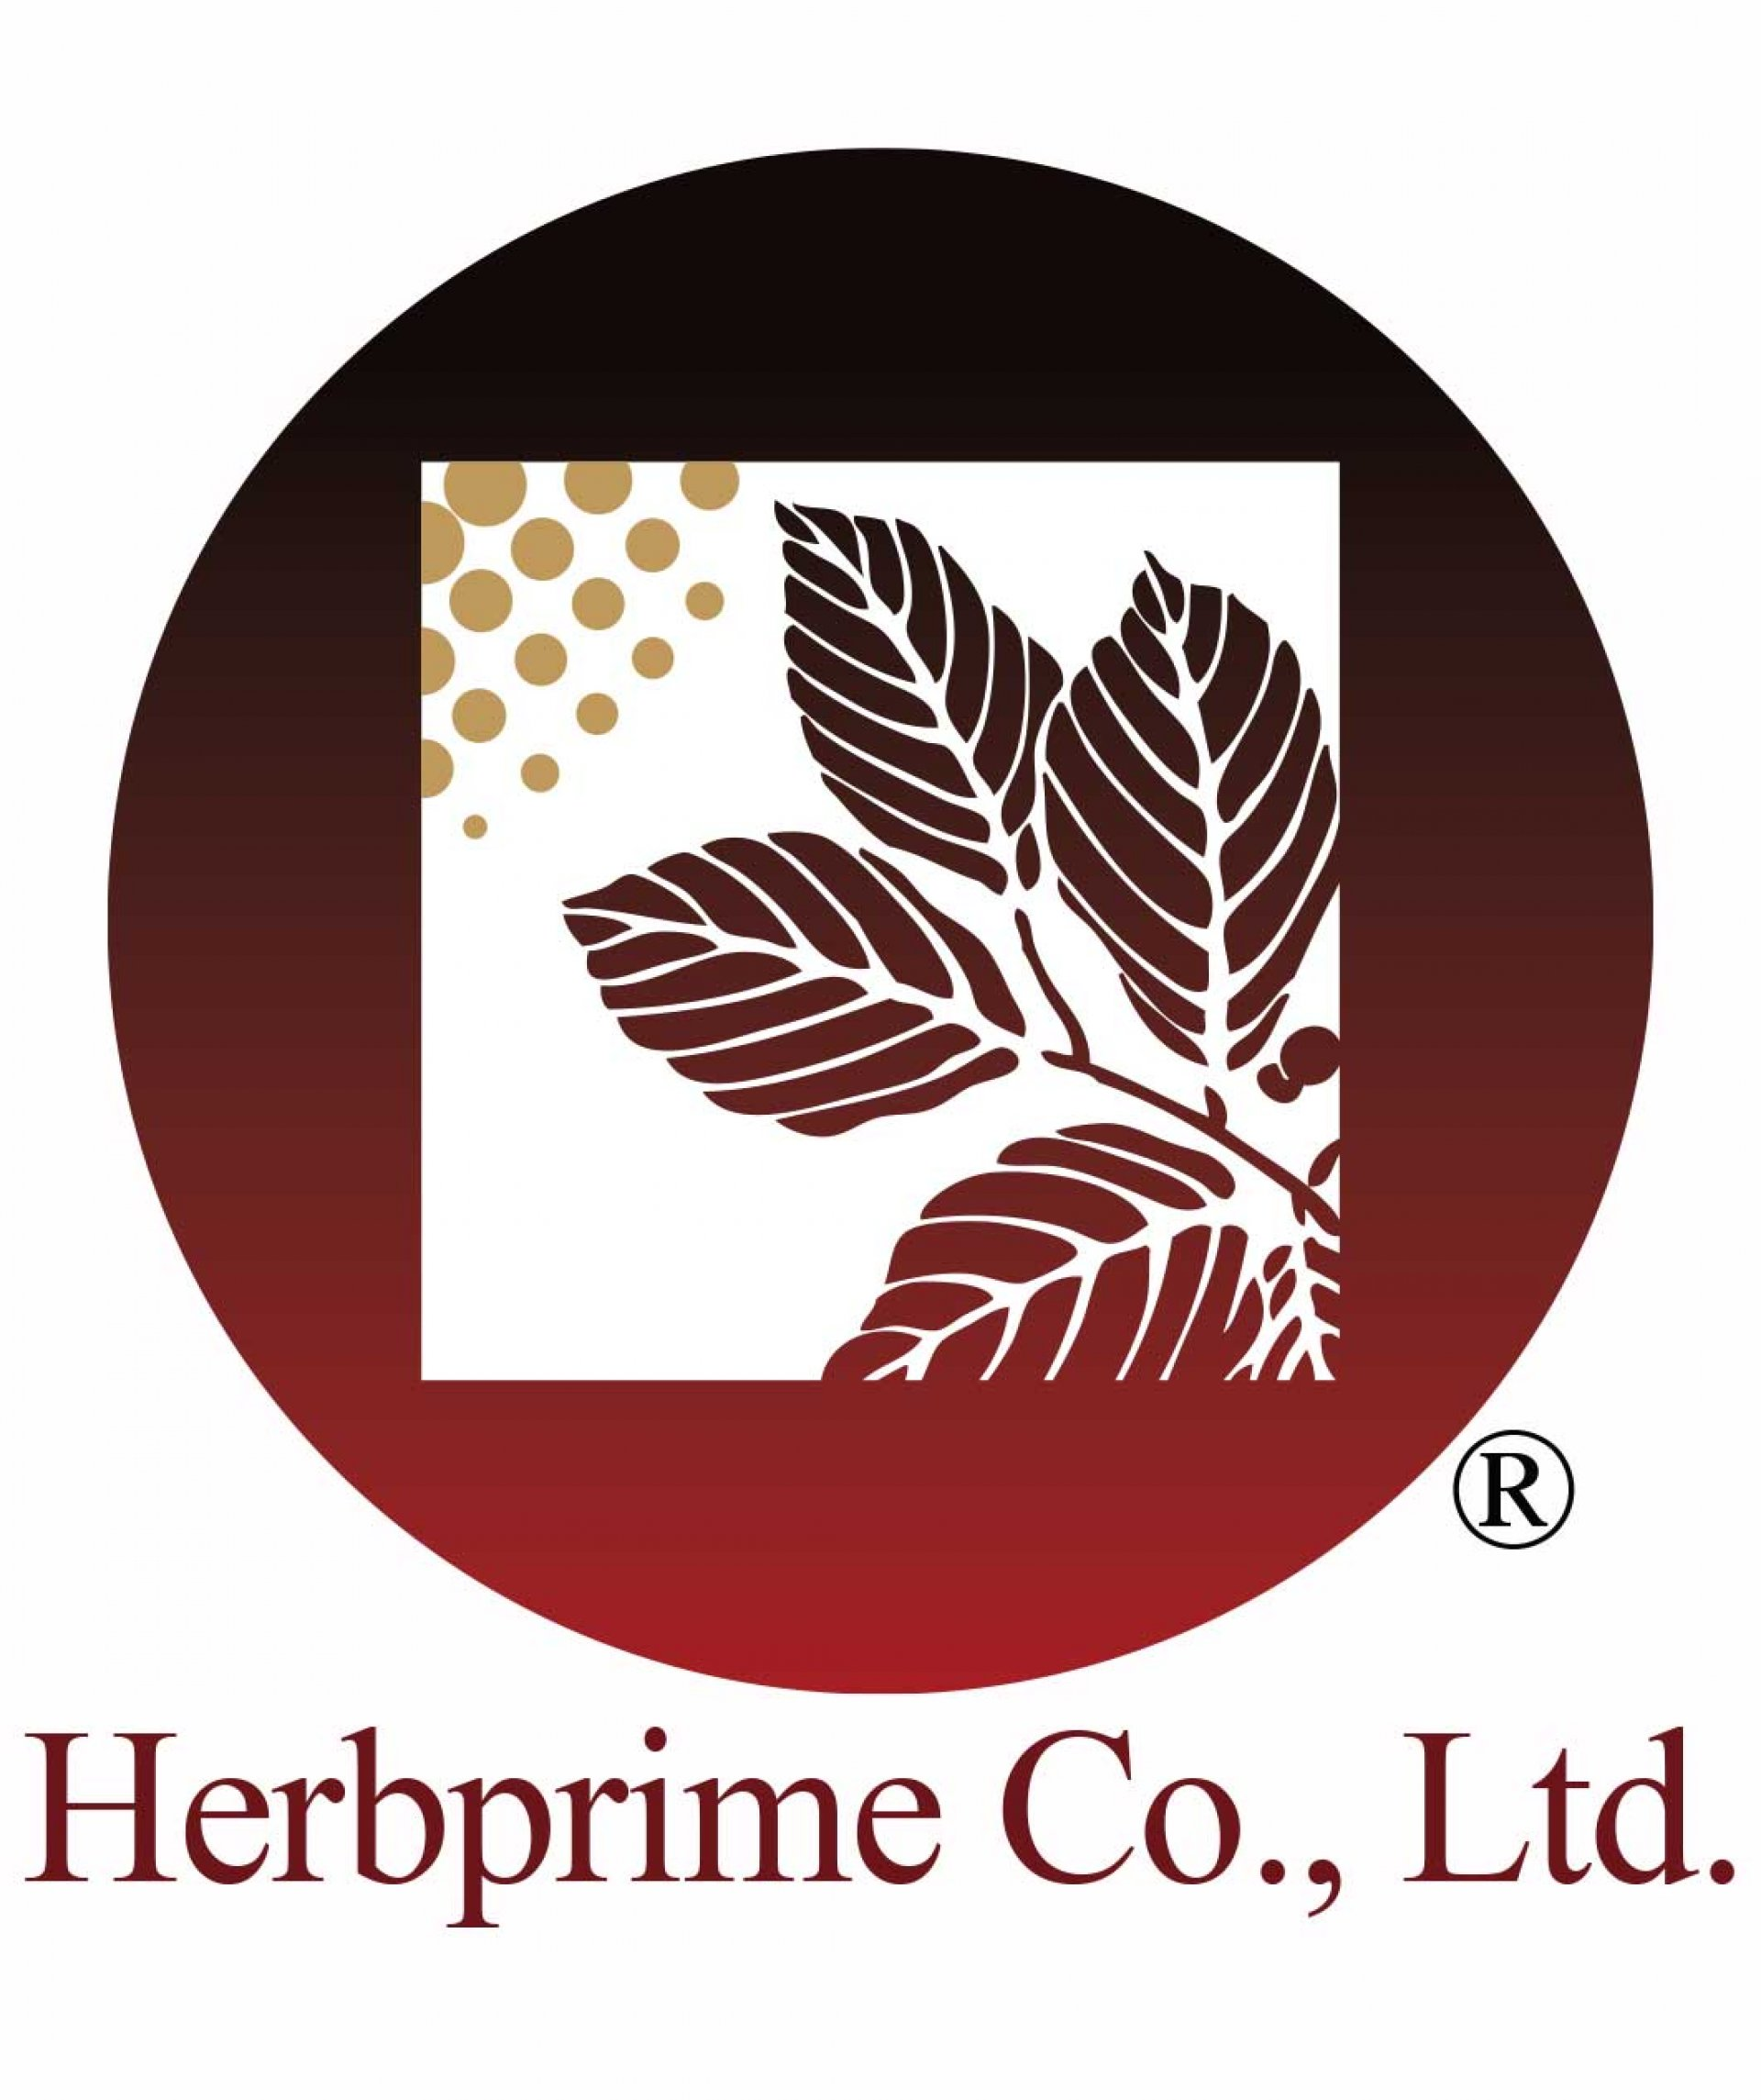 herbprime from United Kingdom